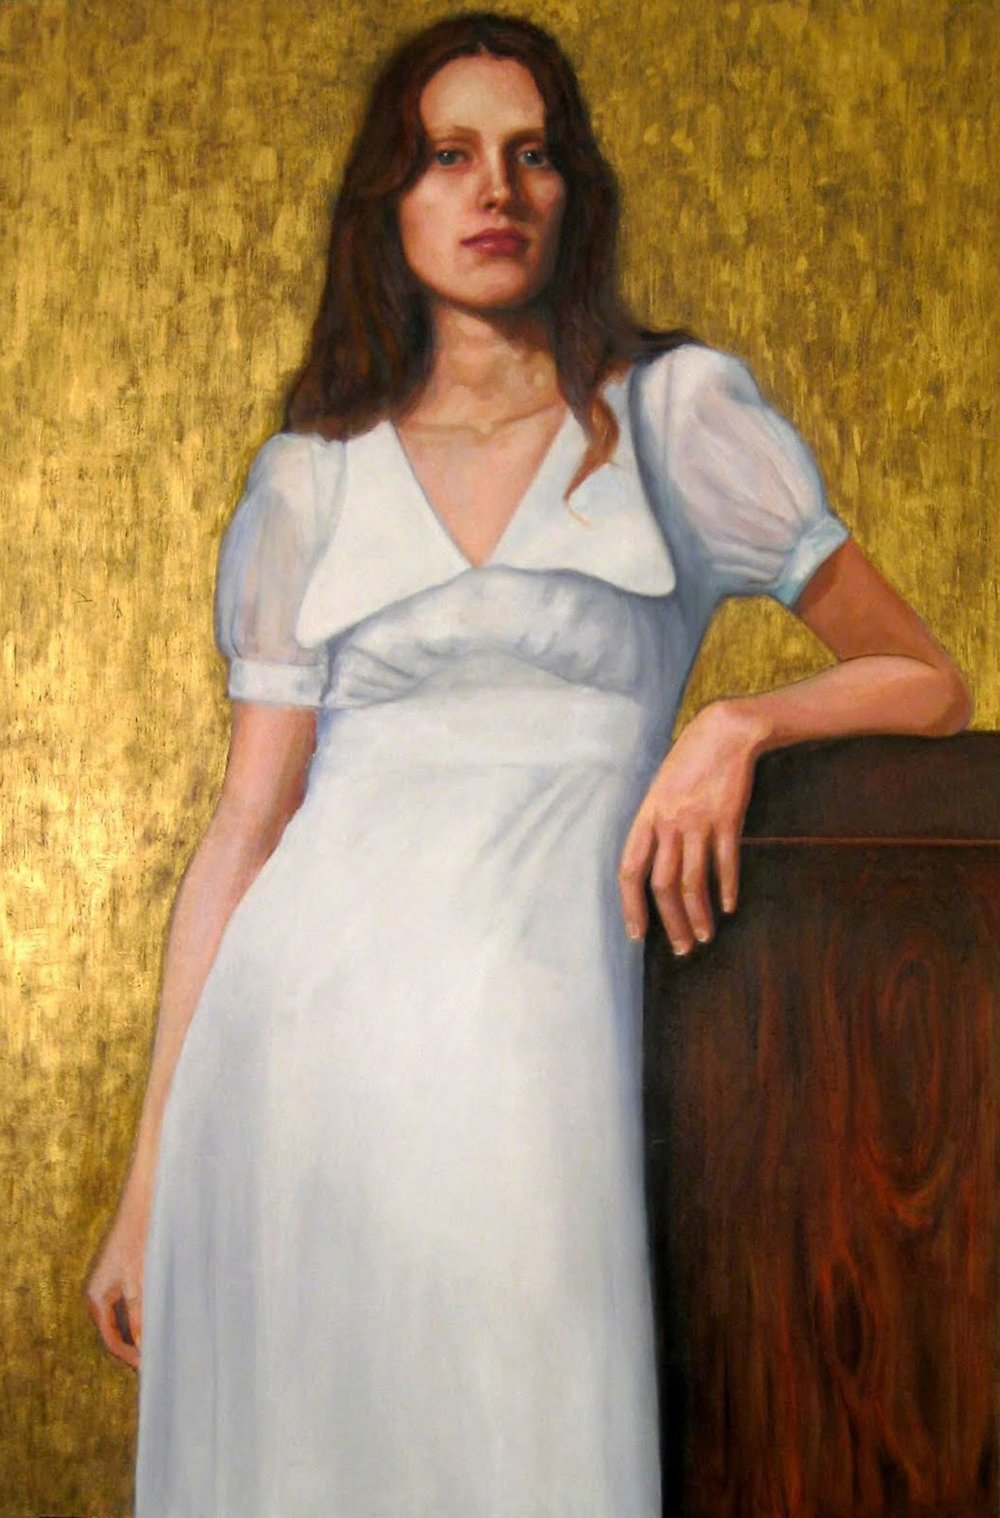 "Sarah in a White Dress, oil on mounted wood panel, 36"" x 24"""